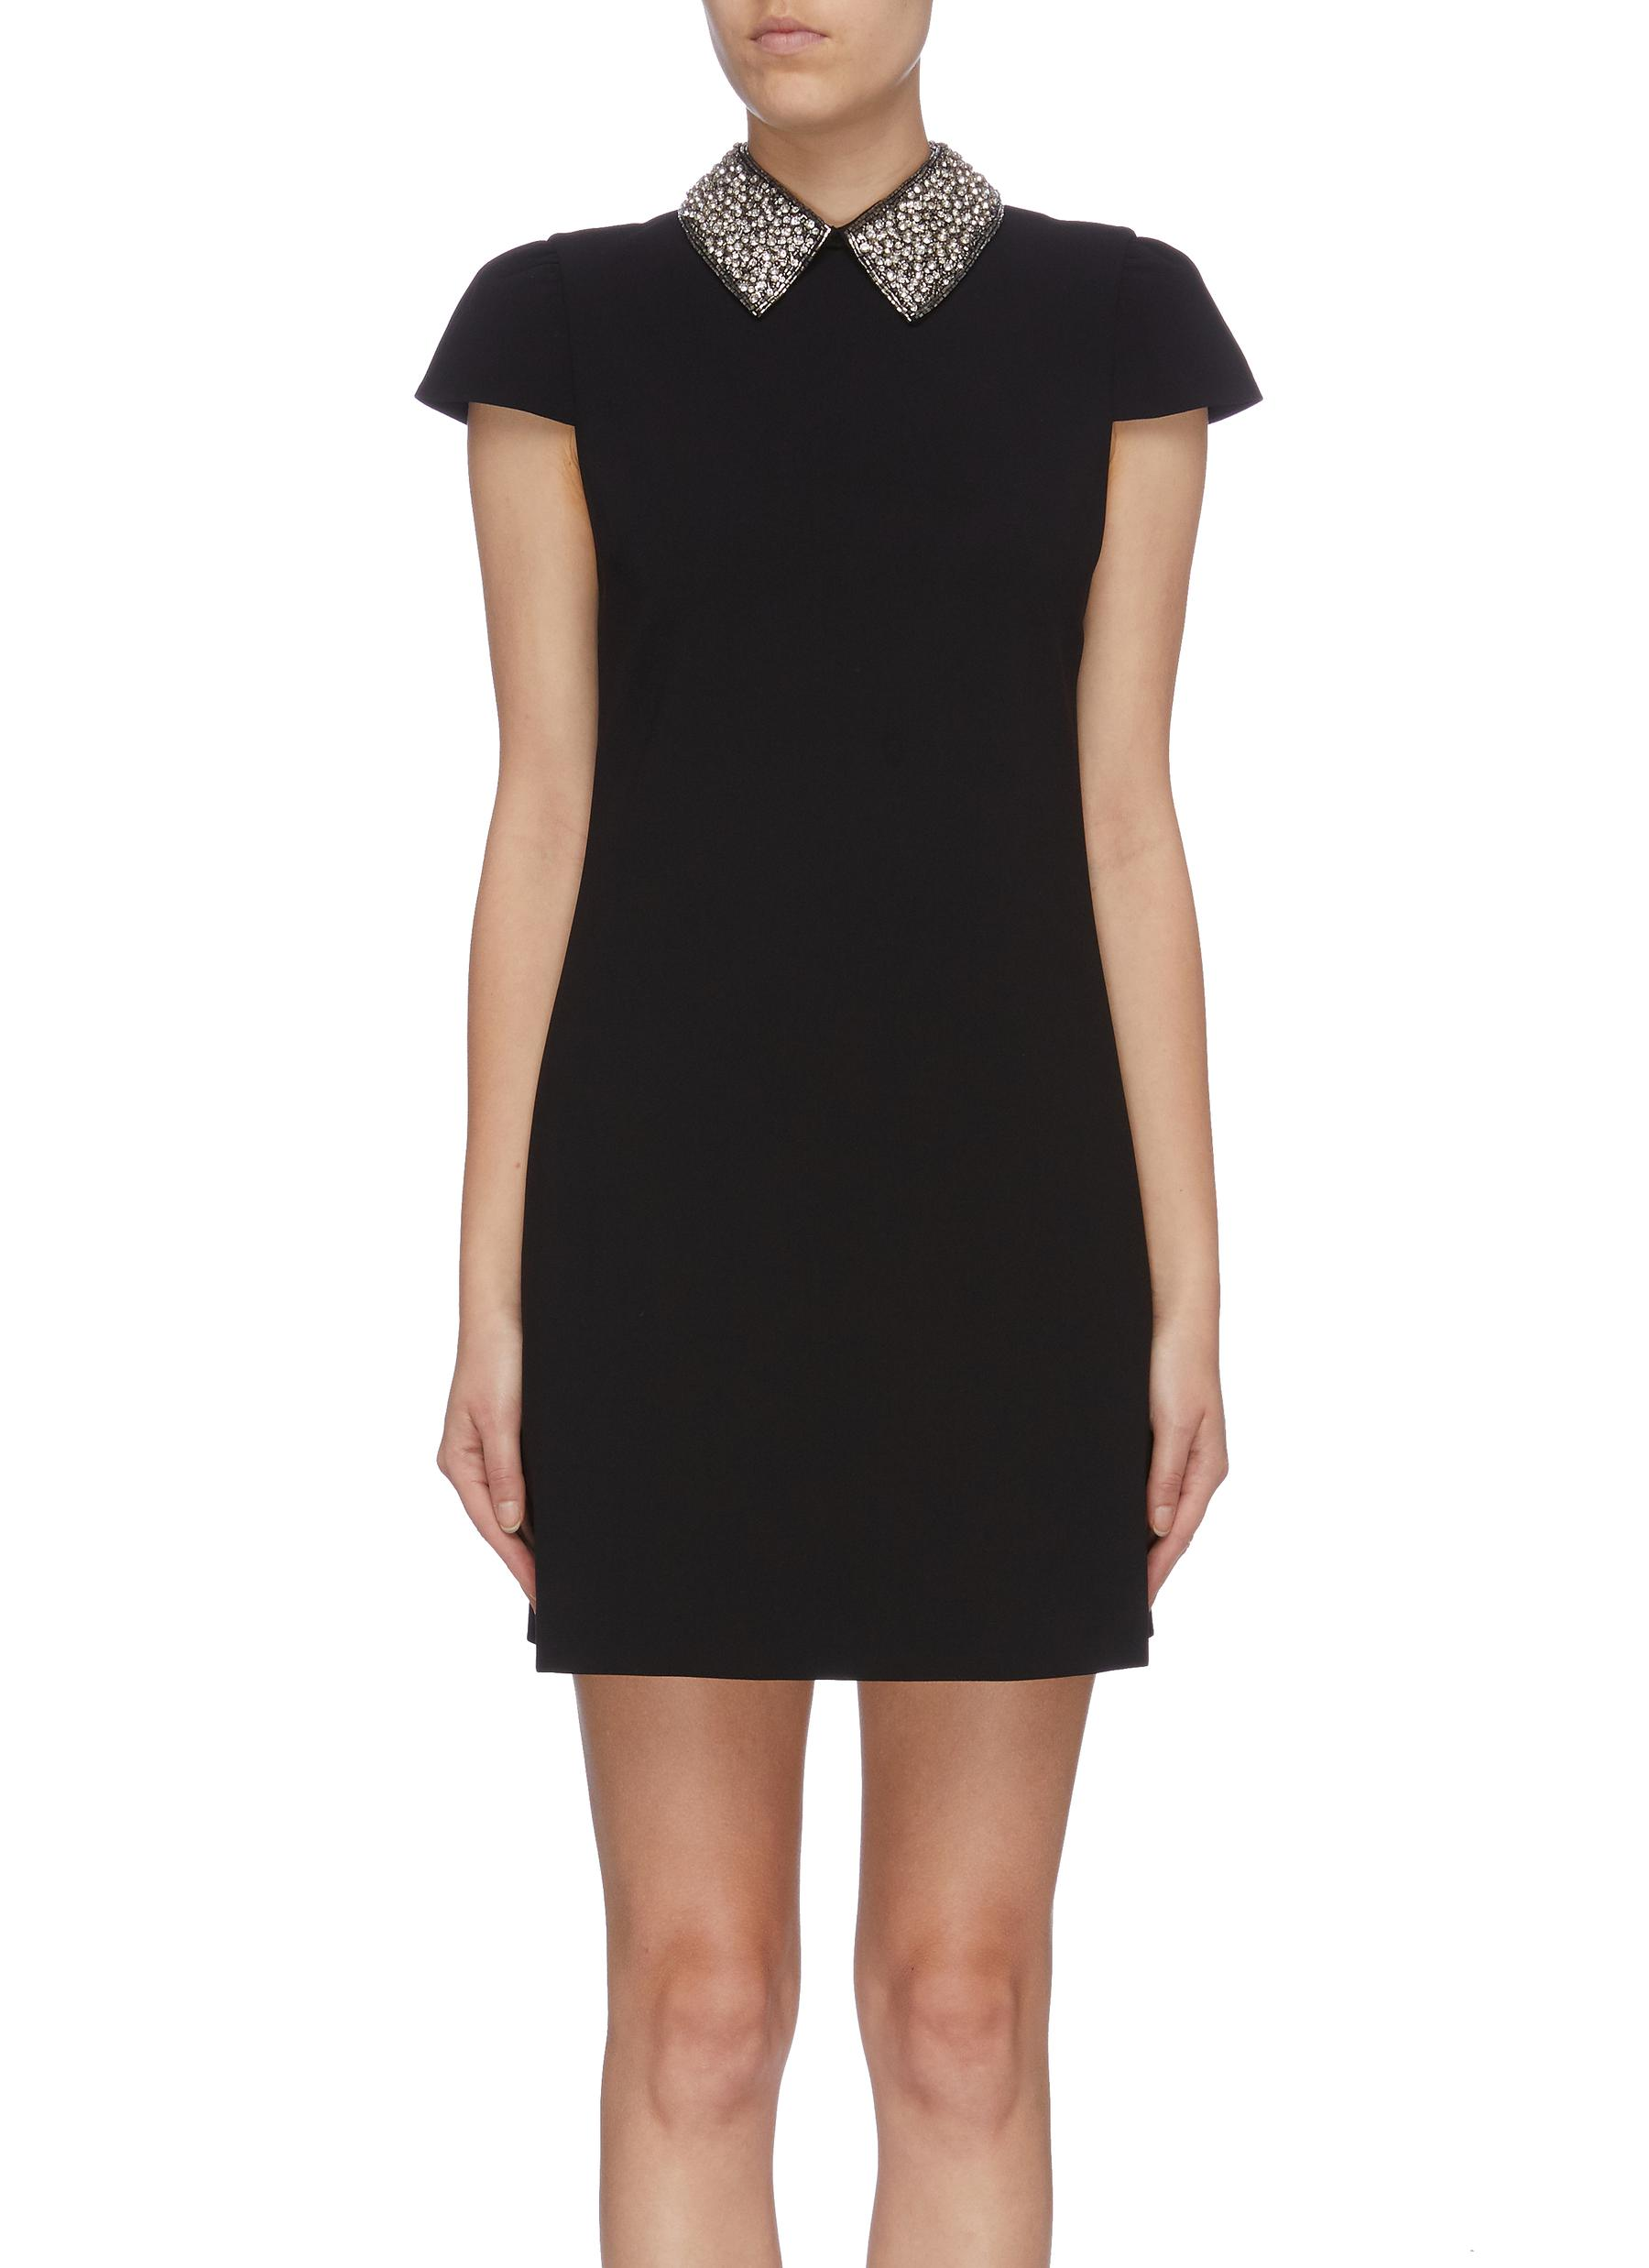 Coley strass embellished dress by Alice + Olivia